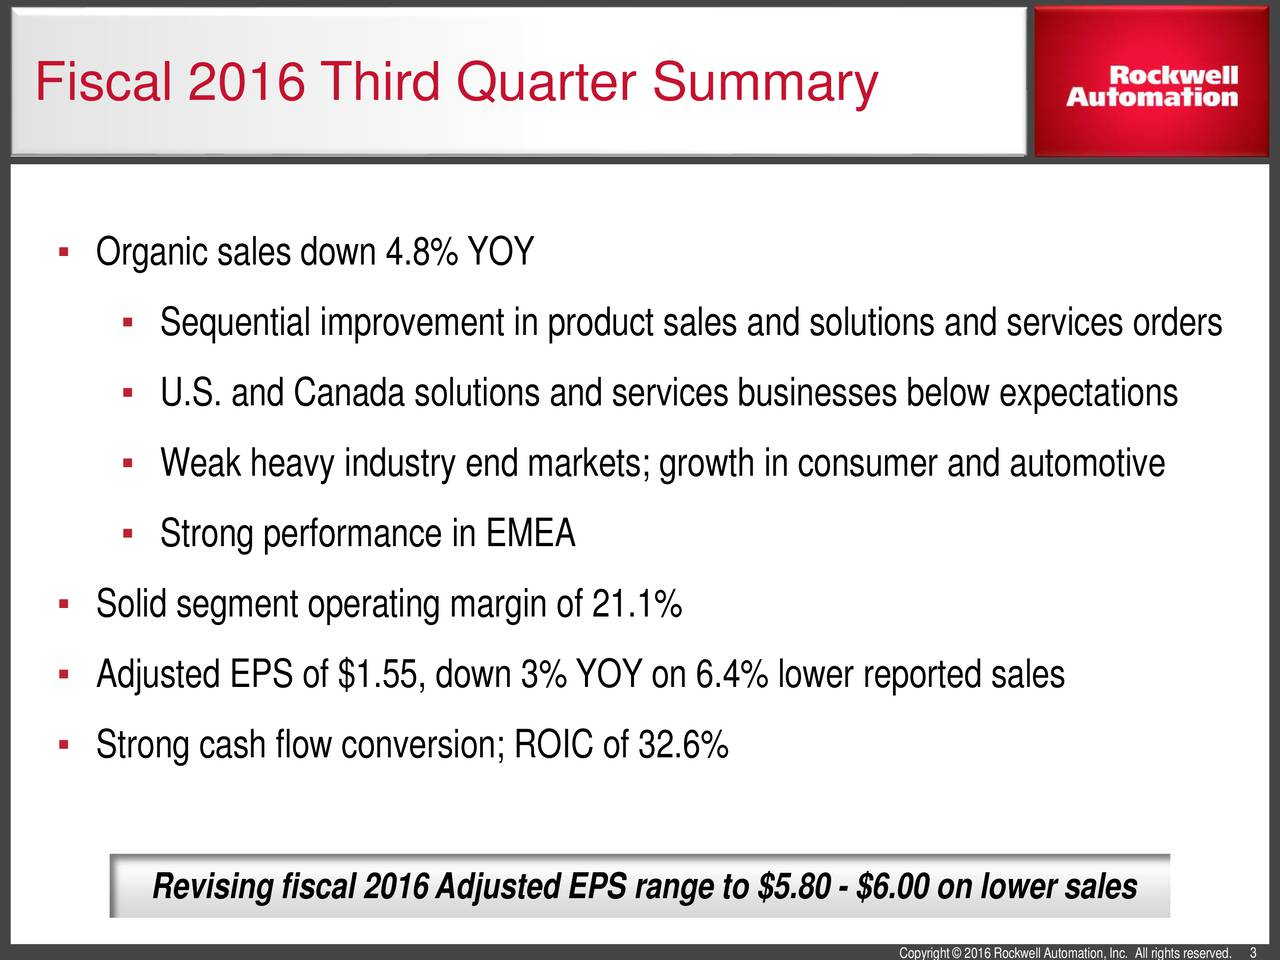 Organic sales down 4.8% YOY Sequential improvement in product sales and solutions and services orders U.S. and Canada solutions and services businesses below expectations Weak heavy industry end markets; growth in consumer and automotive Strong performance in EMEA Solid segment operating margin of 21.1% Adjusted EPS of $1.55, down 3% YOY on6.4% lower reported sales Strong cash flow conversion; ROIC of 32.6% Revising fiscal 2016 Adjusted EPS range to $5.80- $6.00 on lower sales